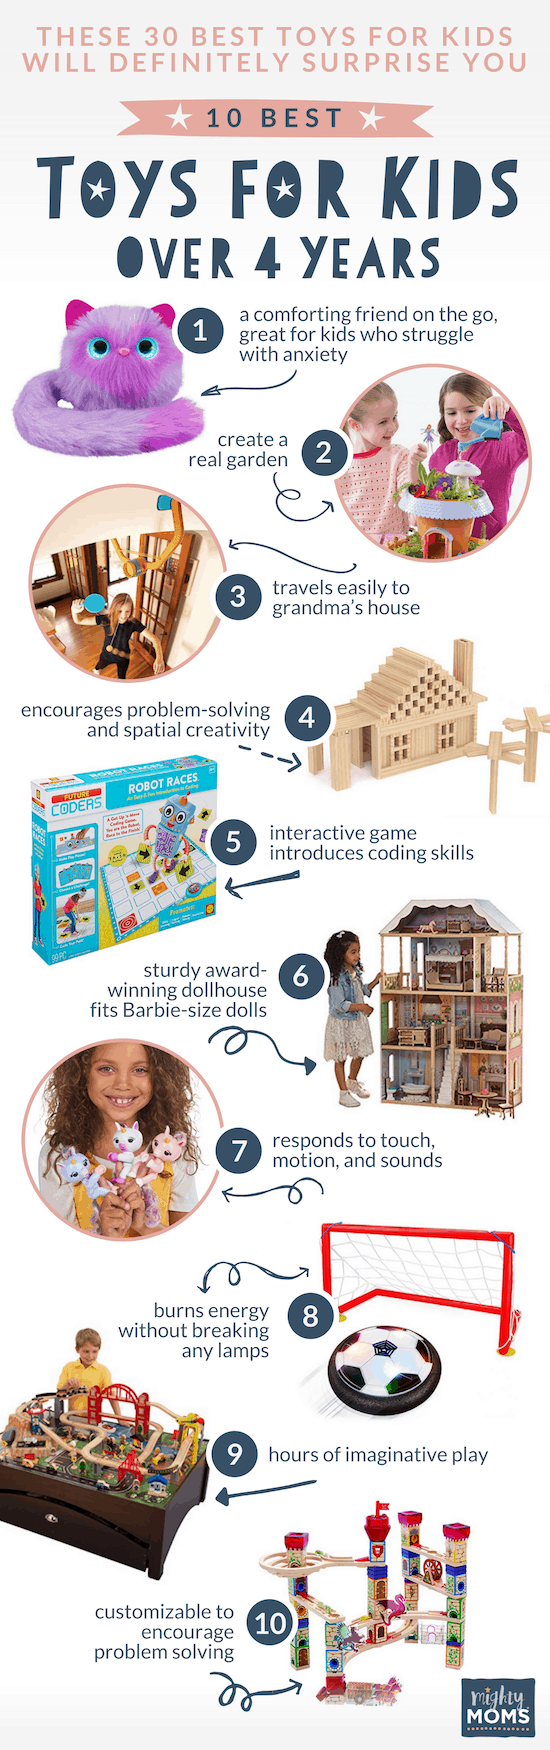 Best Toys for Kids Over 4 Years - MightyMoms.club